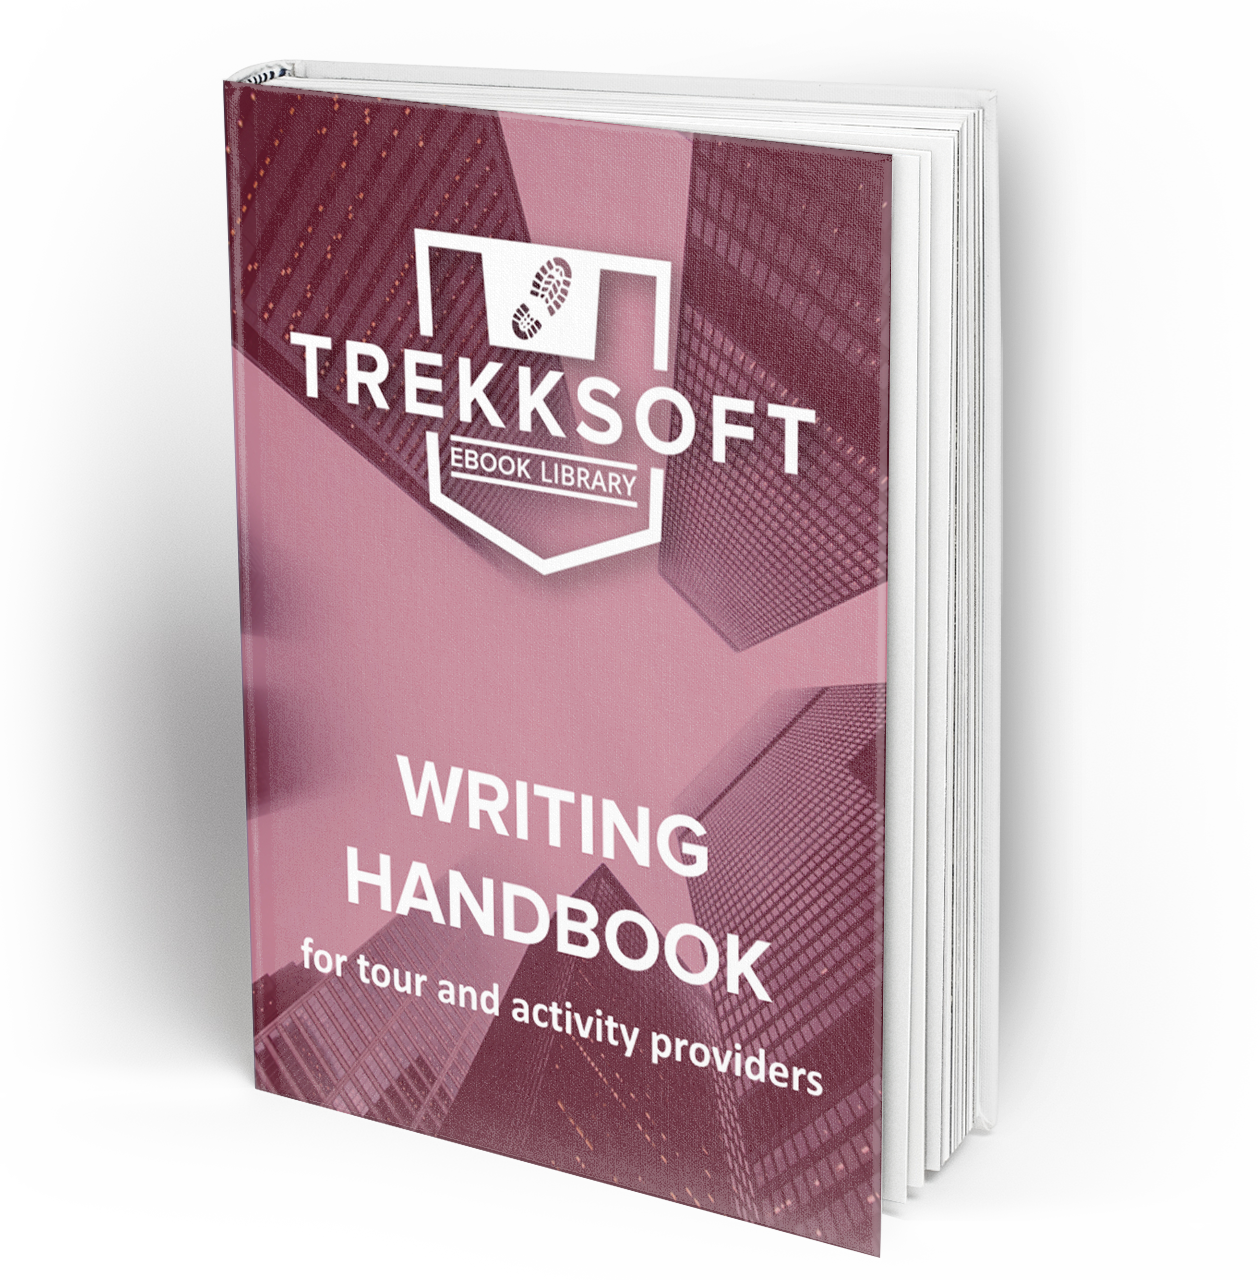 TrekkSoft The Writing Guide for tour and activity operators Content Marketing Ebook